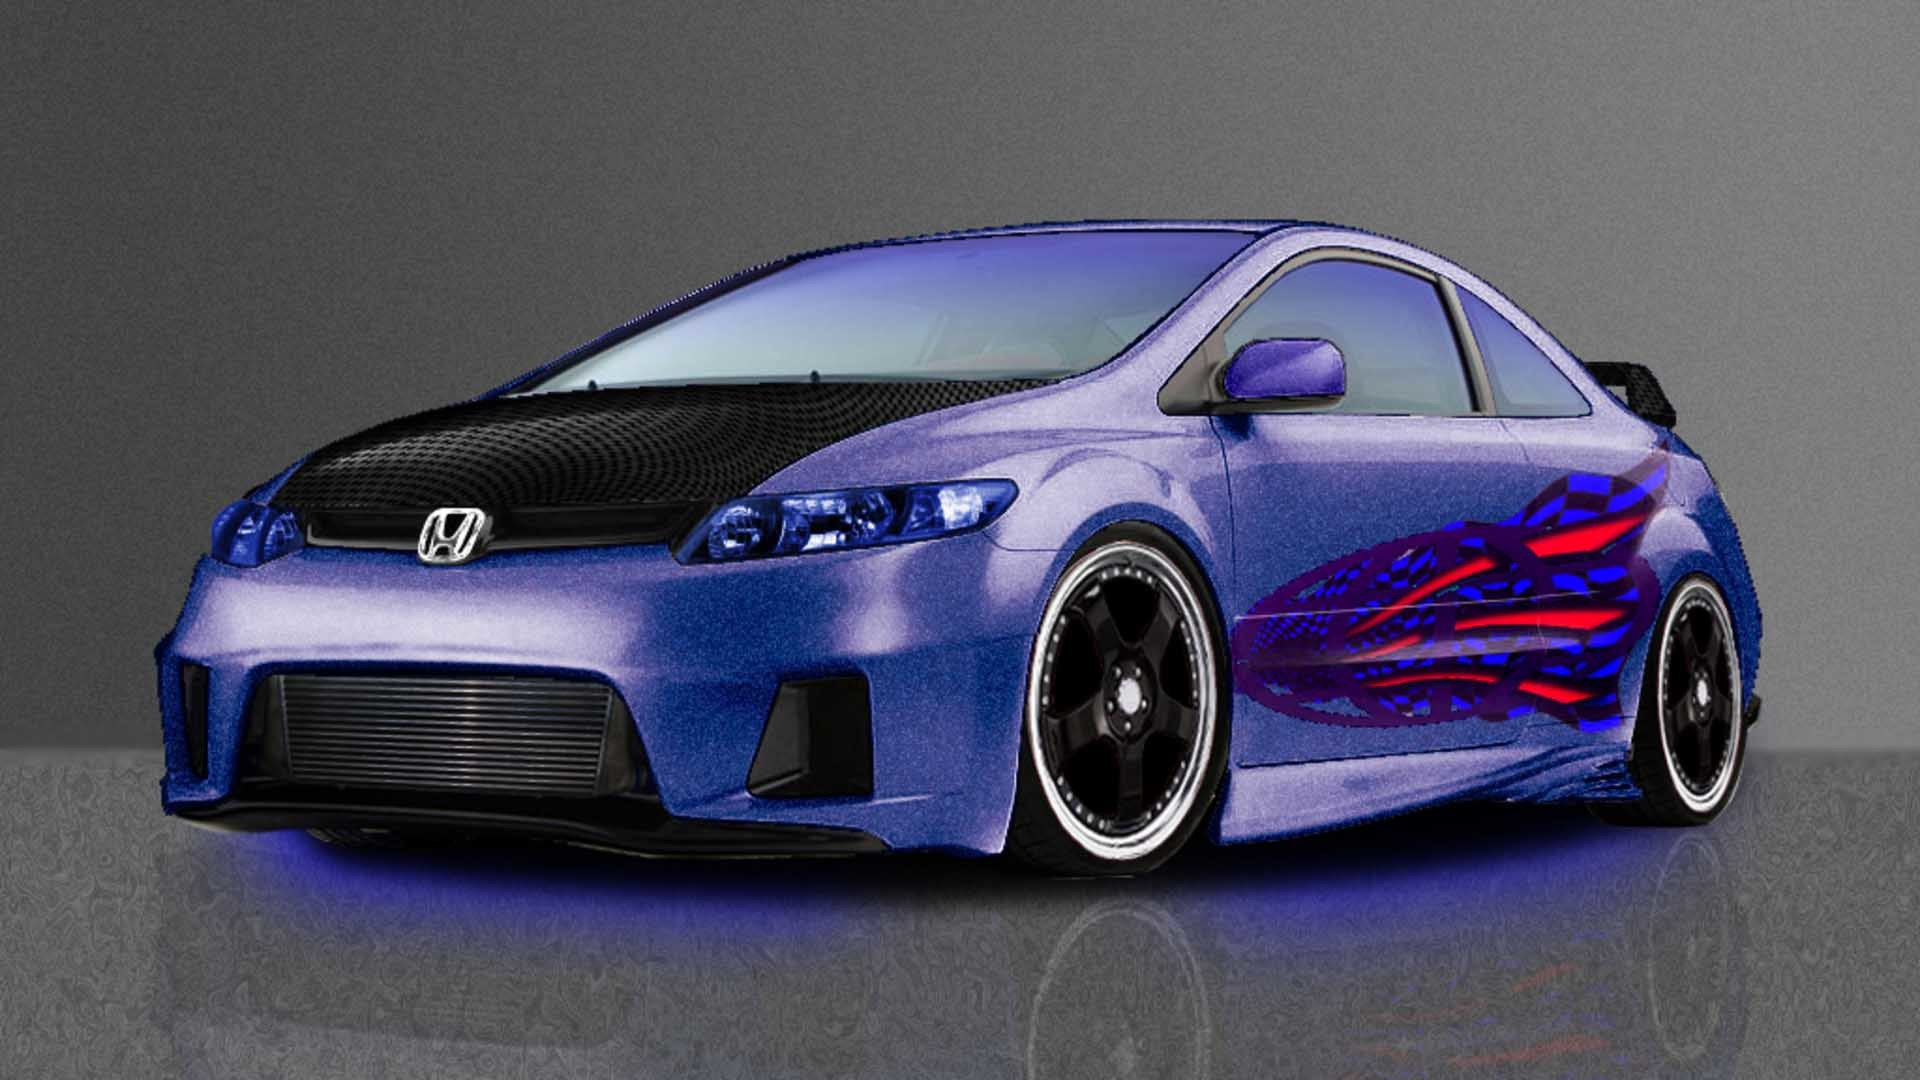 Cool Car Wallpapers HD 1080p 72 images